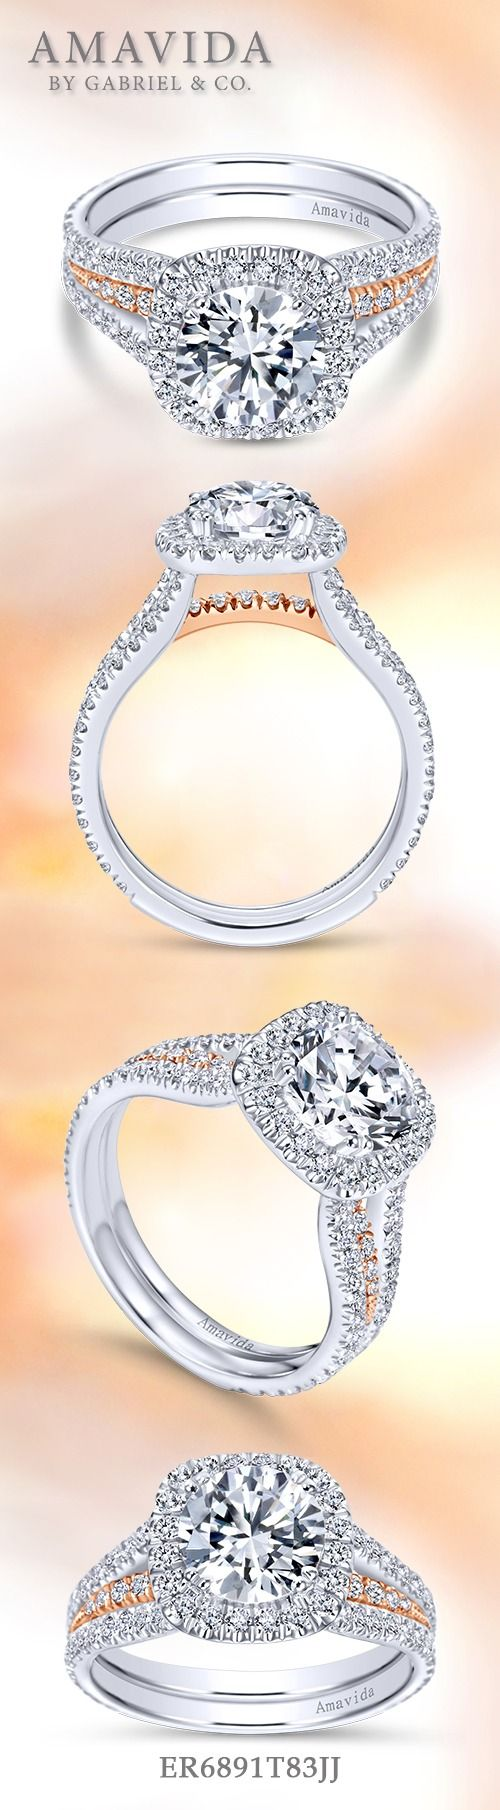 Gabriel & Co.-Voted #1 Most Preferred Fine Jewelry and Bridal Brand. 18k White/Rose Gold Round Halo  Engagement Ring